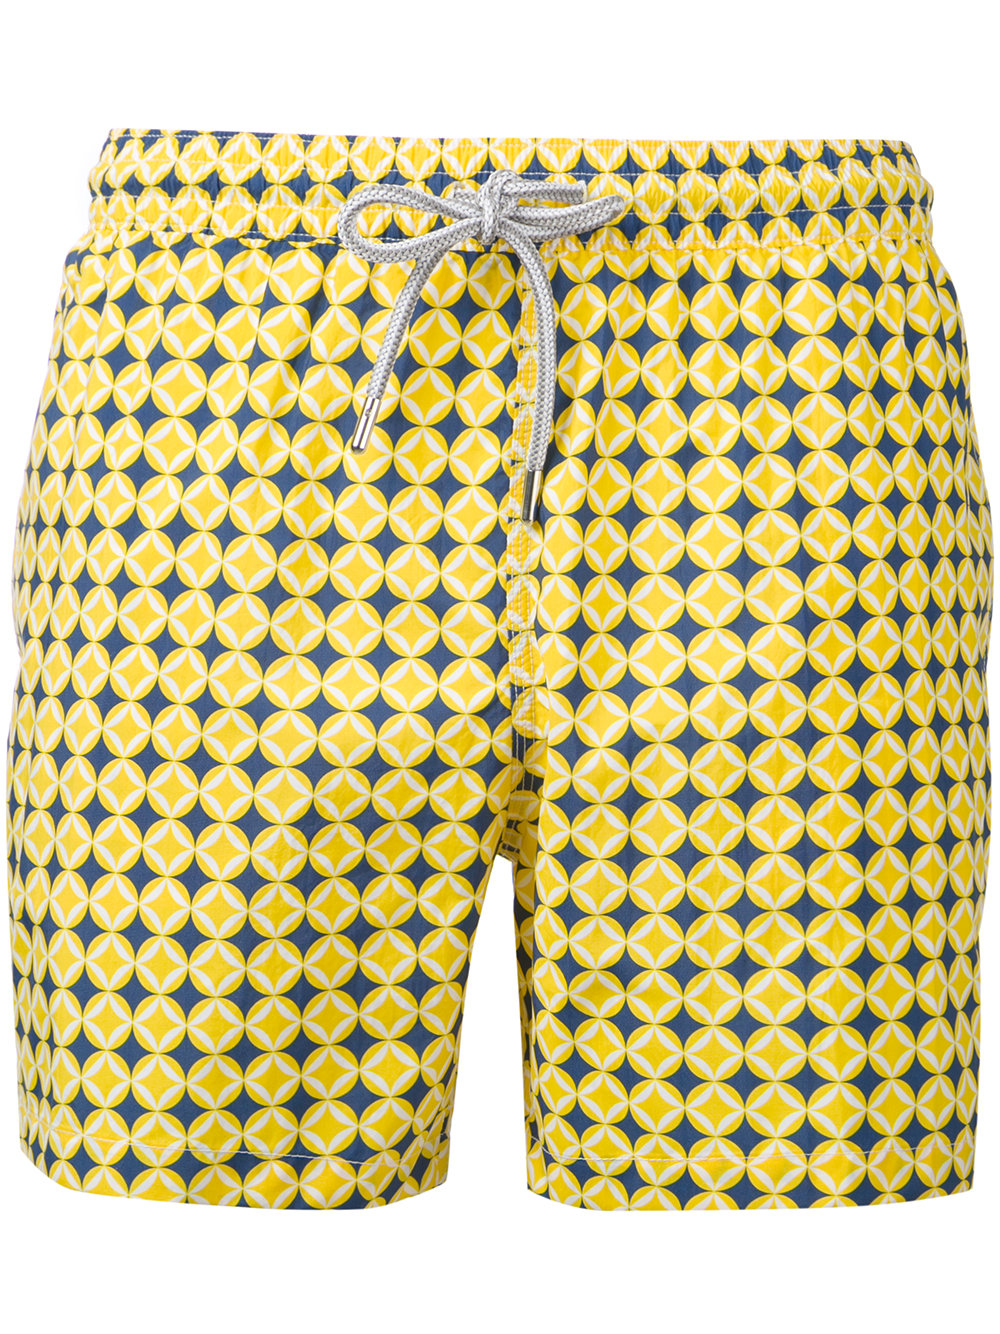 These swim shorts are cool in more ways then one. Rock them pool side or at the beach to complete your summer wardrobe. - Capricode printed swim shorts                               farfetch.com                                                          $126